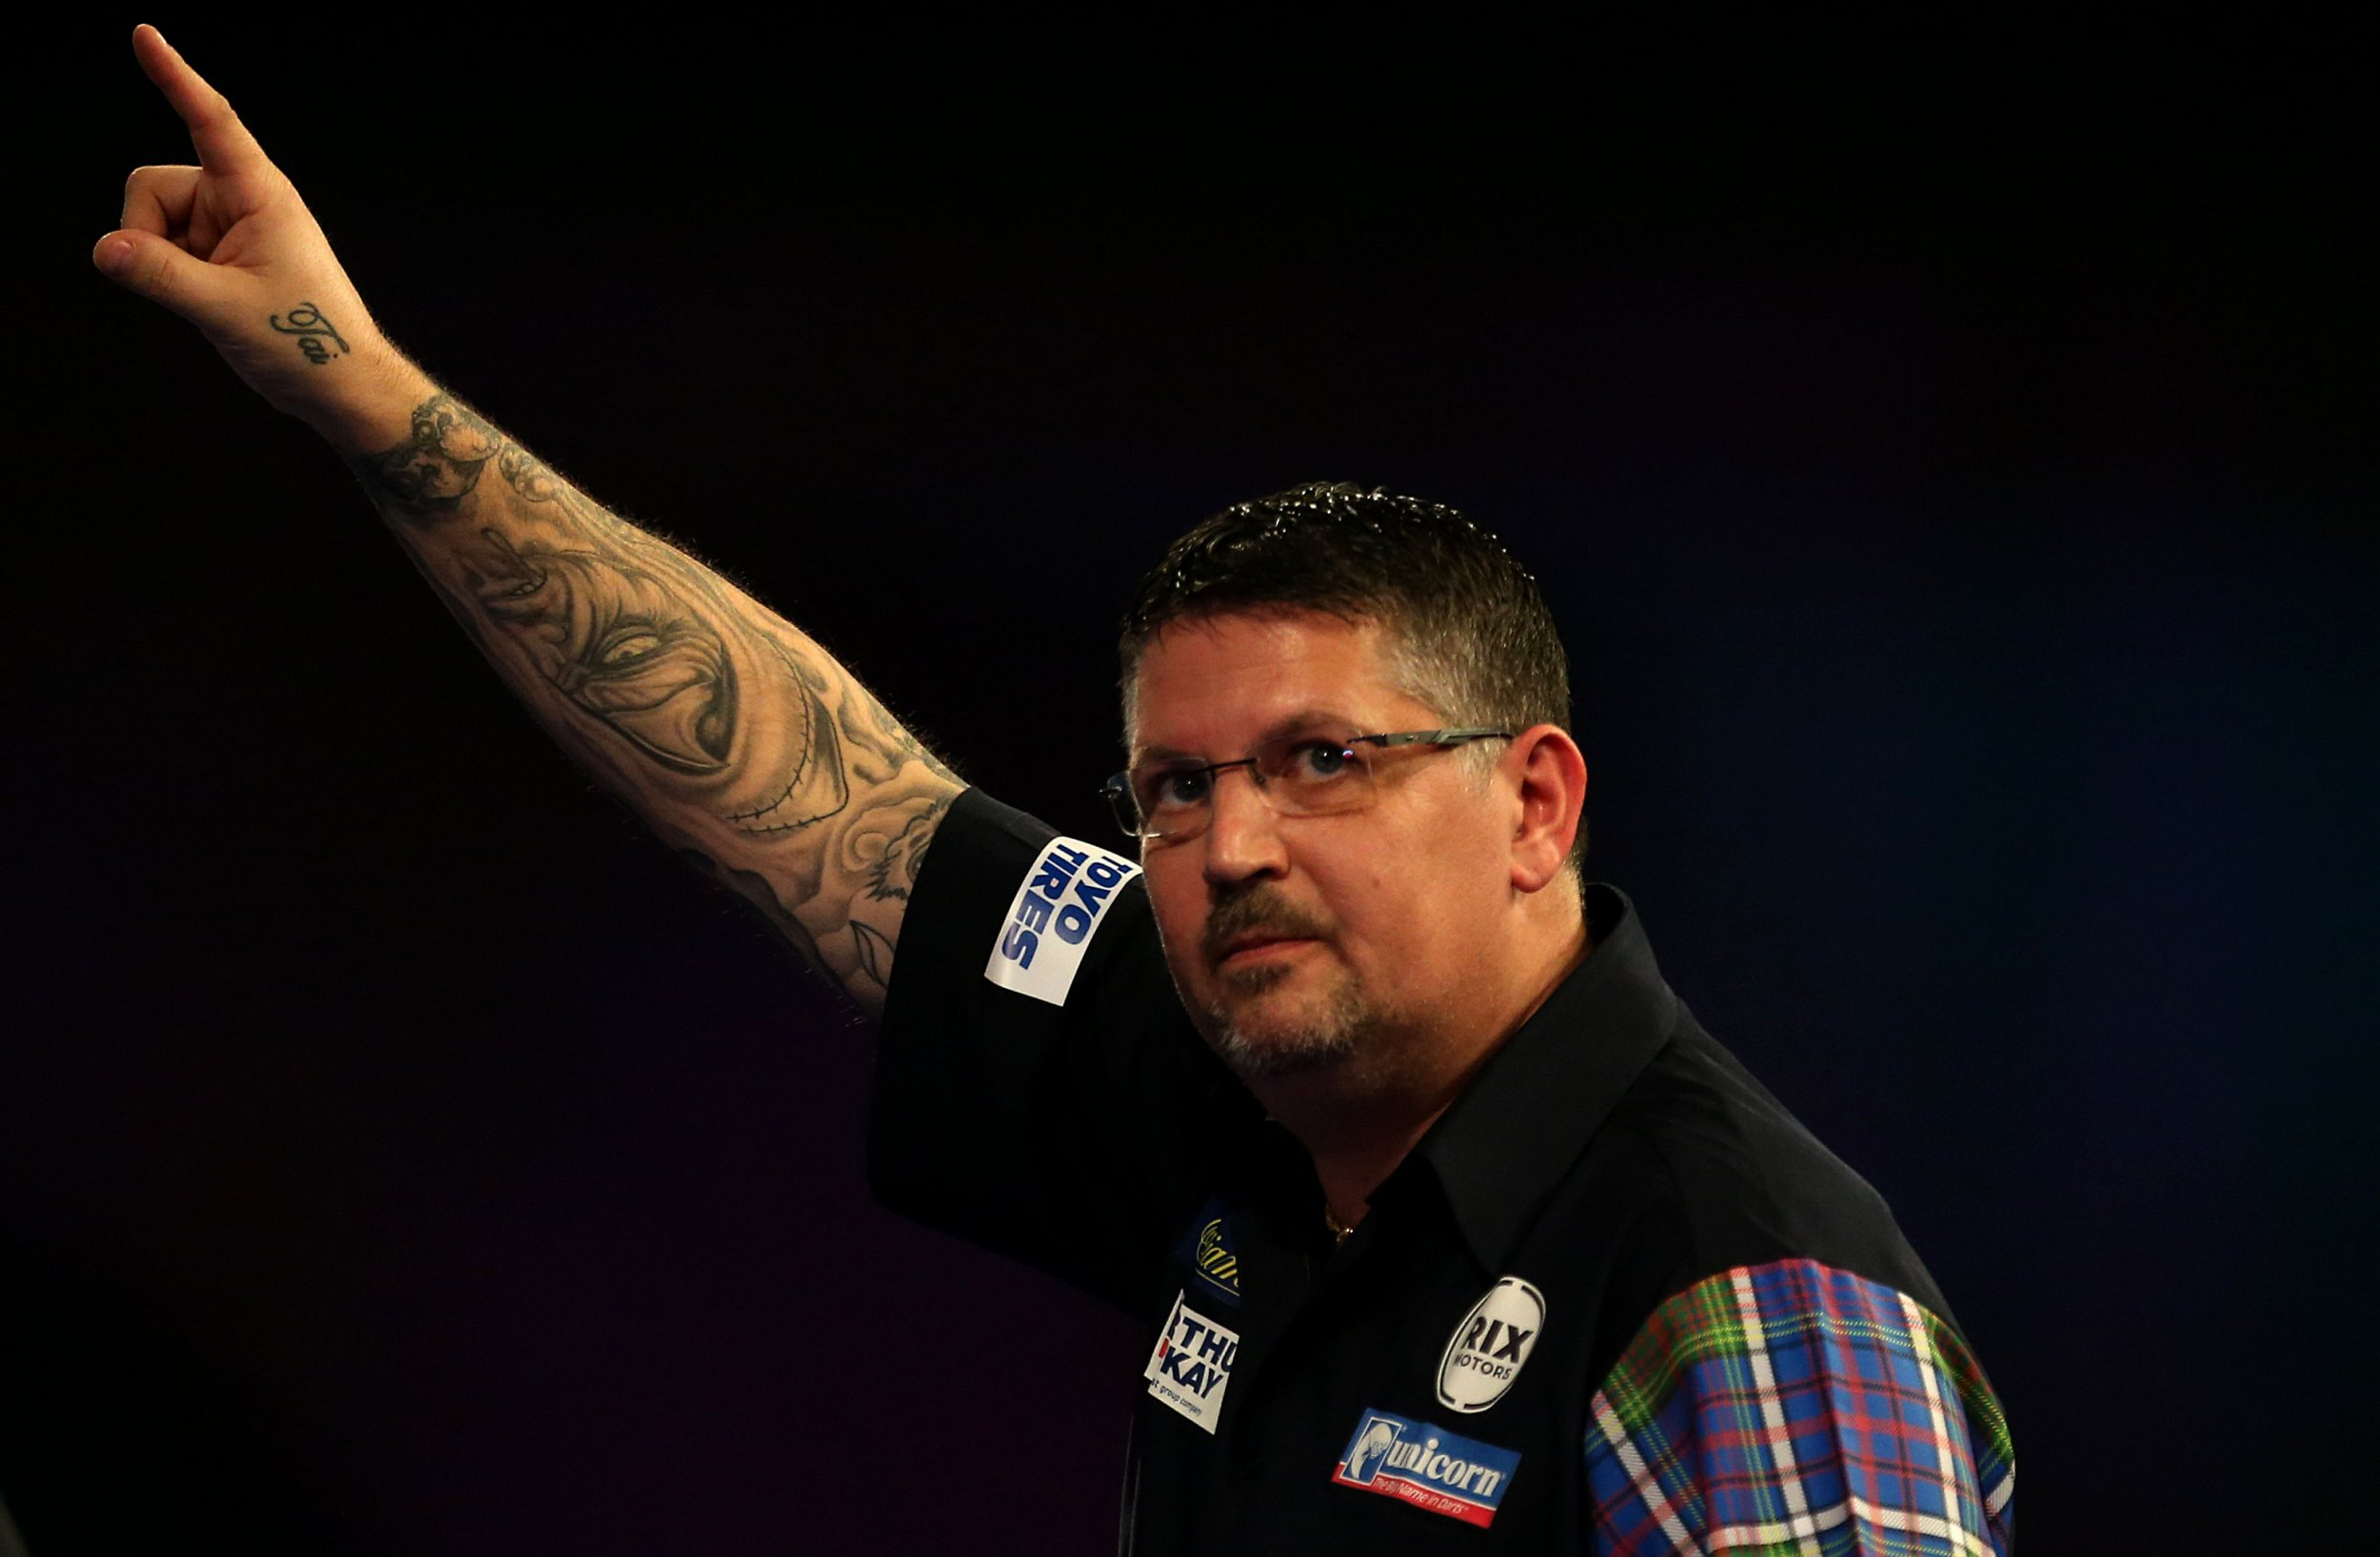 Gary Anderson celebrates winning his match during day fourteen of the William Hill World Darts Championships at Alexandra Palace, London. PRESS ASSOCIATION Photo. Picture date: Saturday December 29, 2018. See PA story DARTS World. Photo credit should read: Steven Paston/PA Wire